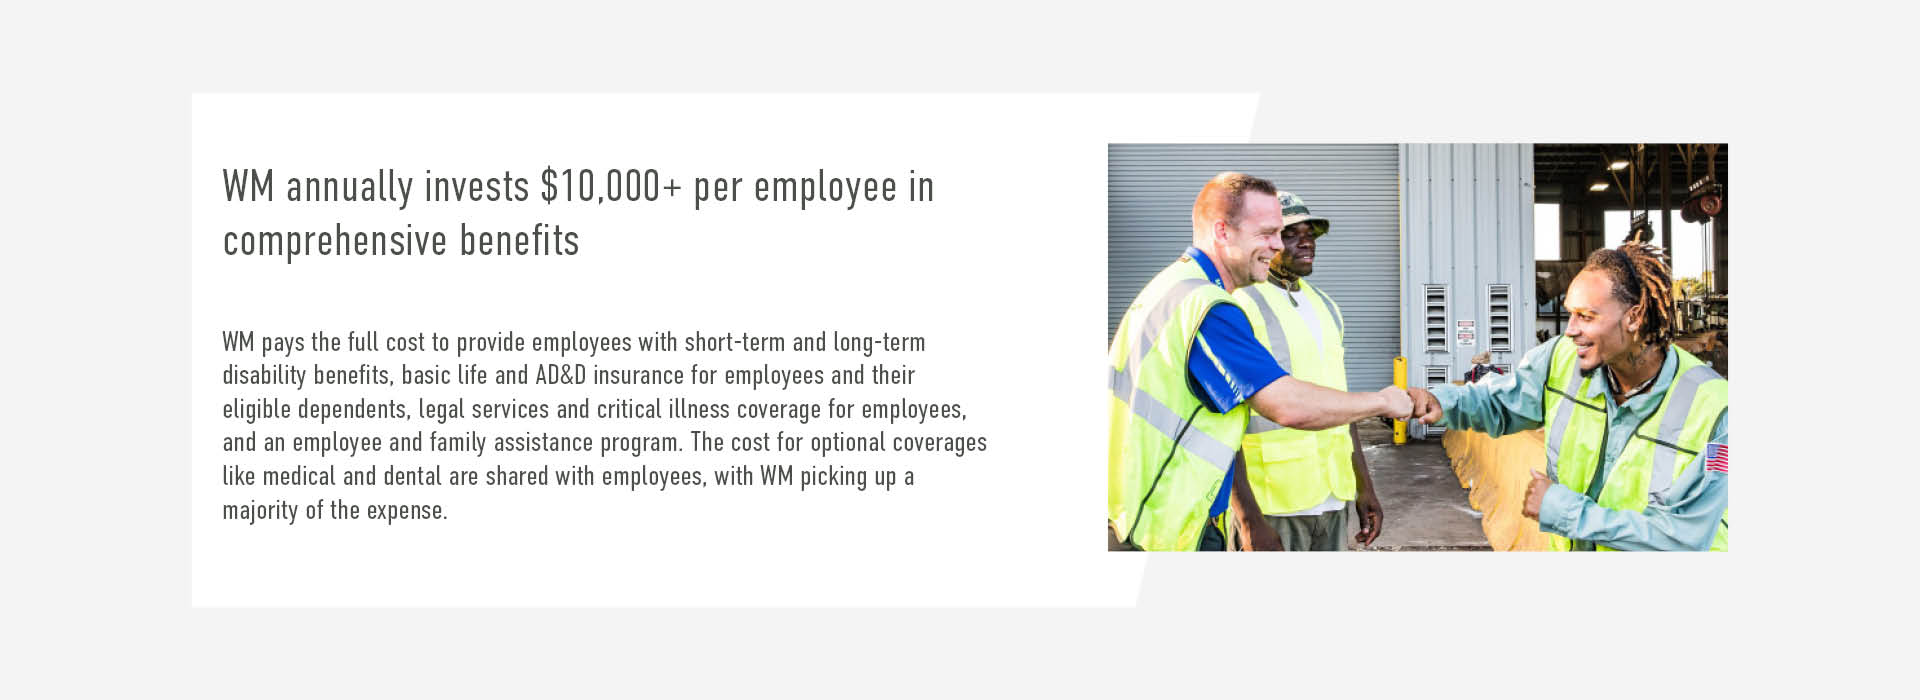 WM annually invests $10,000+ per employee in comprehensive benefits. WM pays the full cost to provide employees with short-term and long-term  disability benefits, basic life and AD&D insurance for employees and their  eligible dependents, legal services and critical illness coverage for employees, and an employee and family assistance program. The cost for optional coverages like medical and dental are shared with employees, with WM picking up a  majority of the expense.